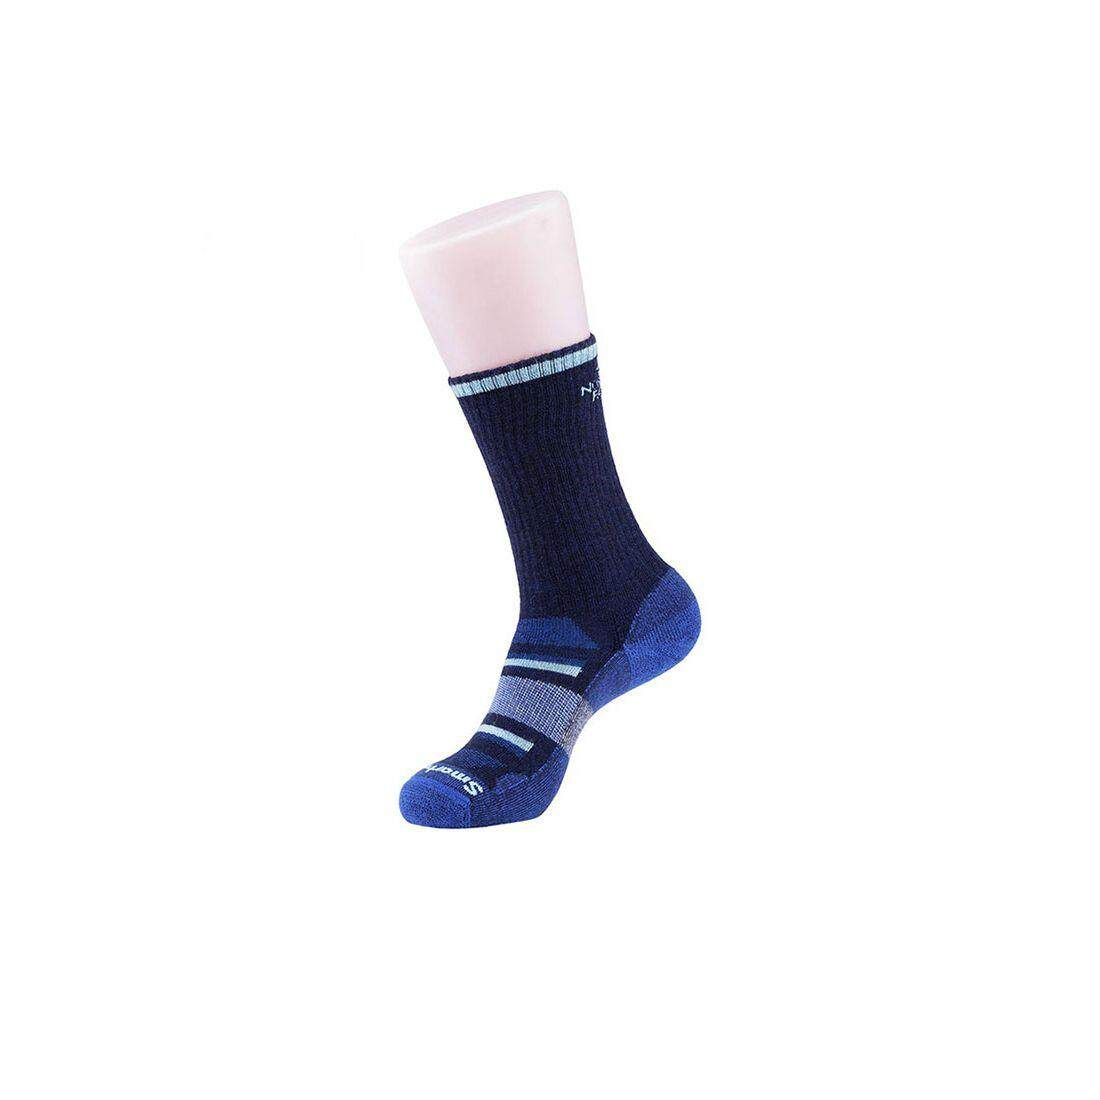 49a2940da The North Face,PINK Men's Socks price in Malaysia - Best The North ...